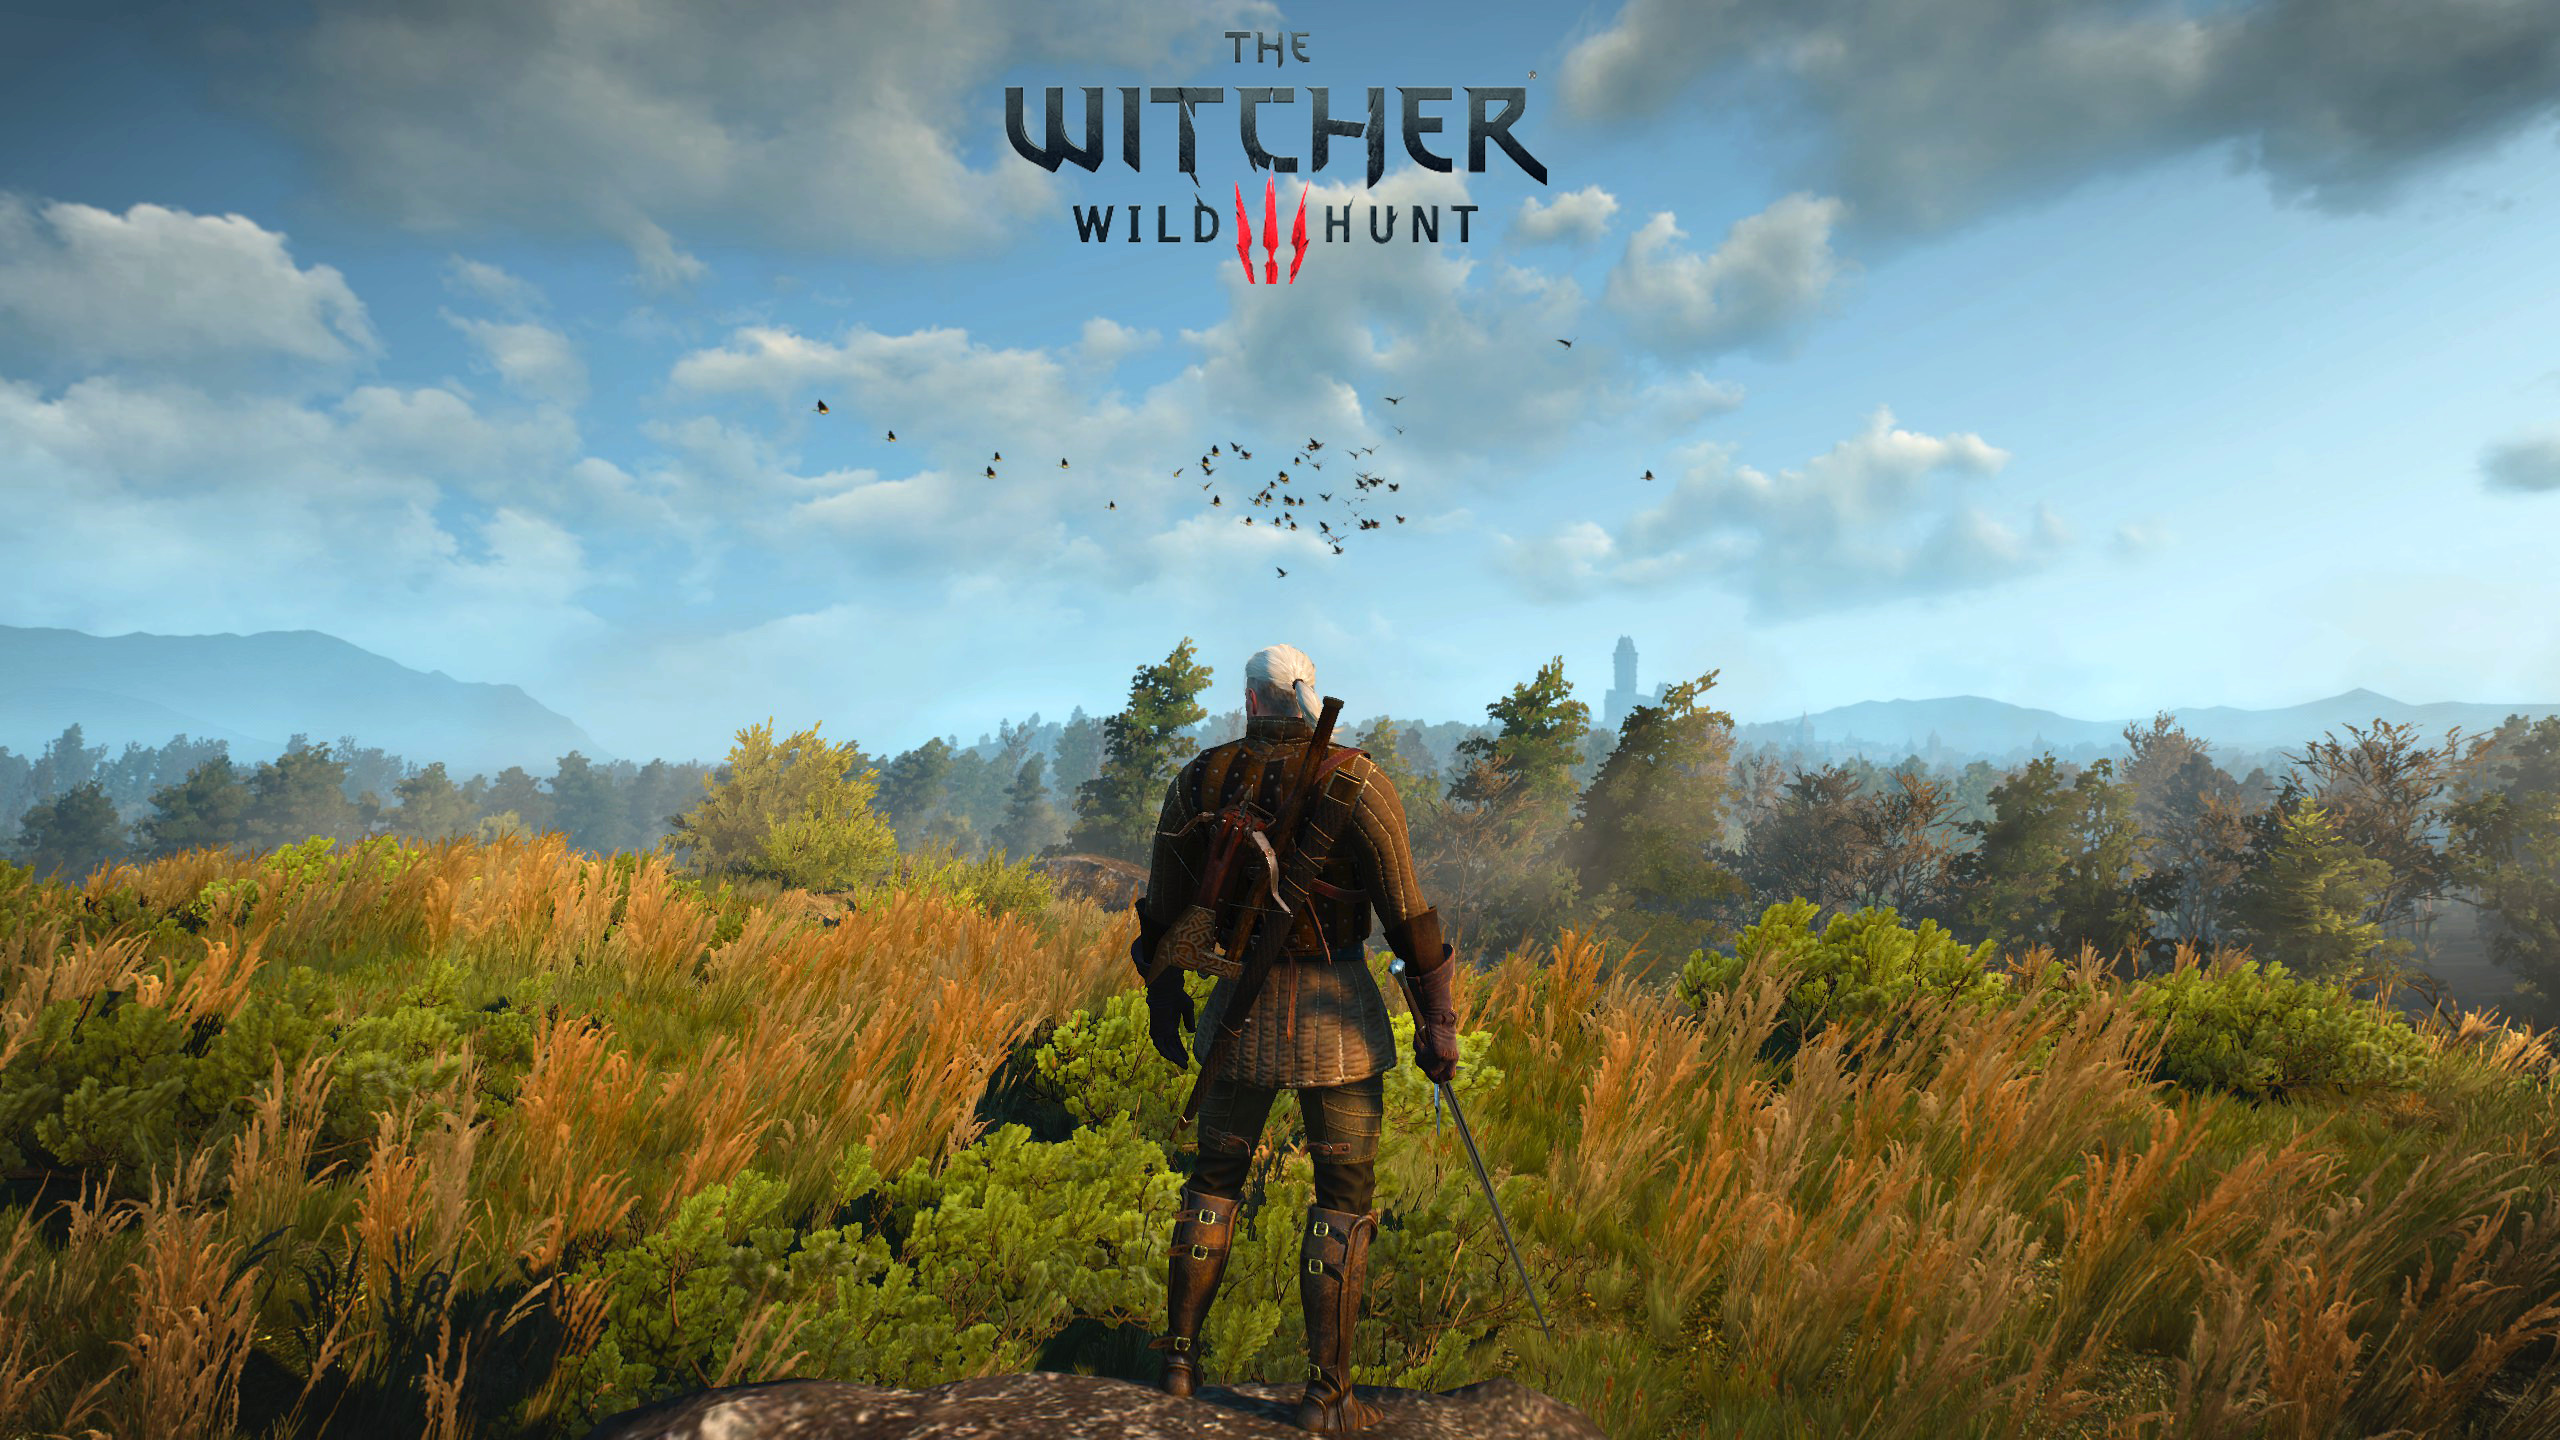 2560x1440 Created 4 Minimal Witcher 3 Wallpapers [1440p] 1080p in Comments : witcher